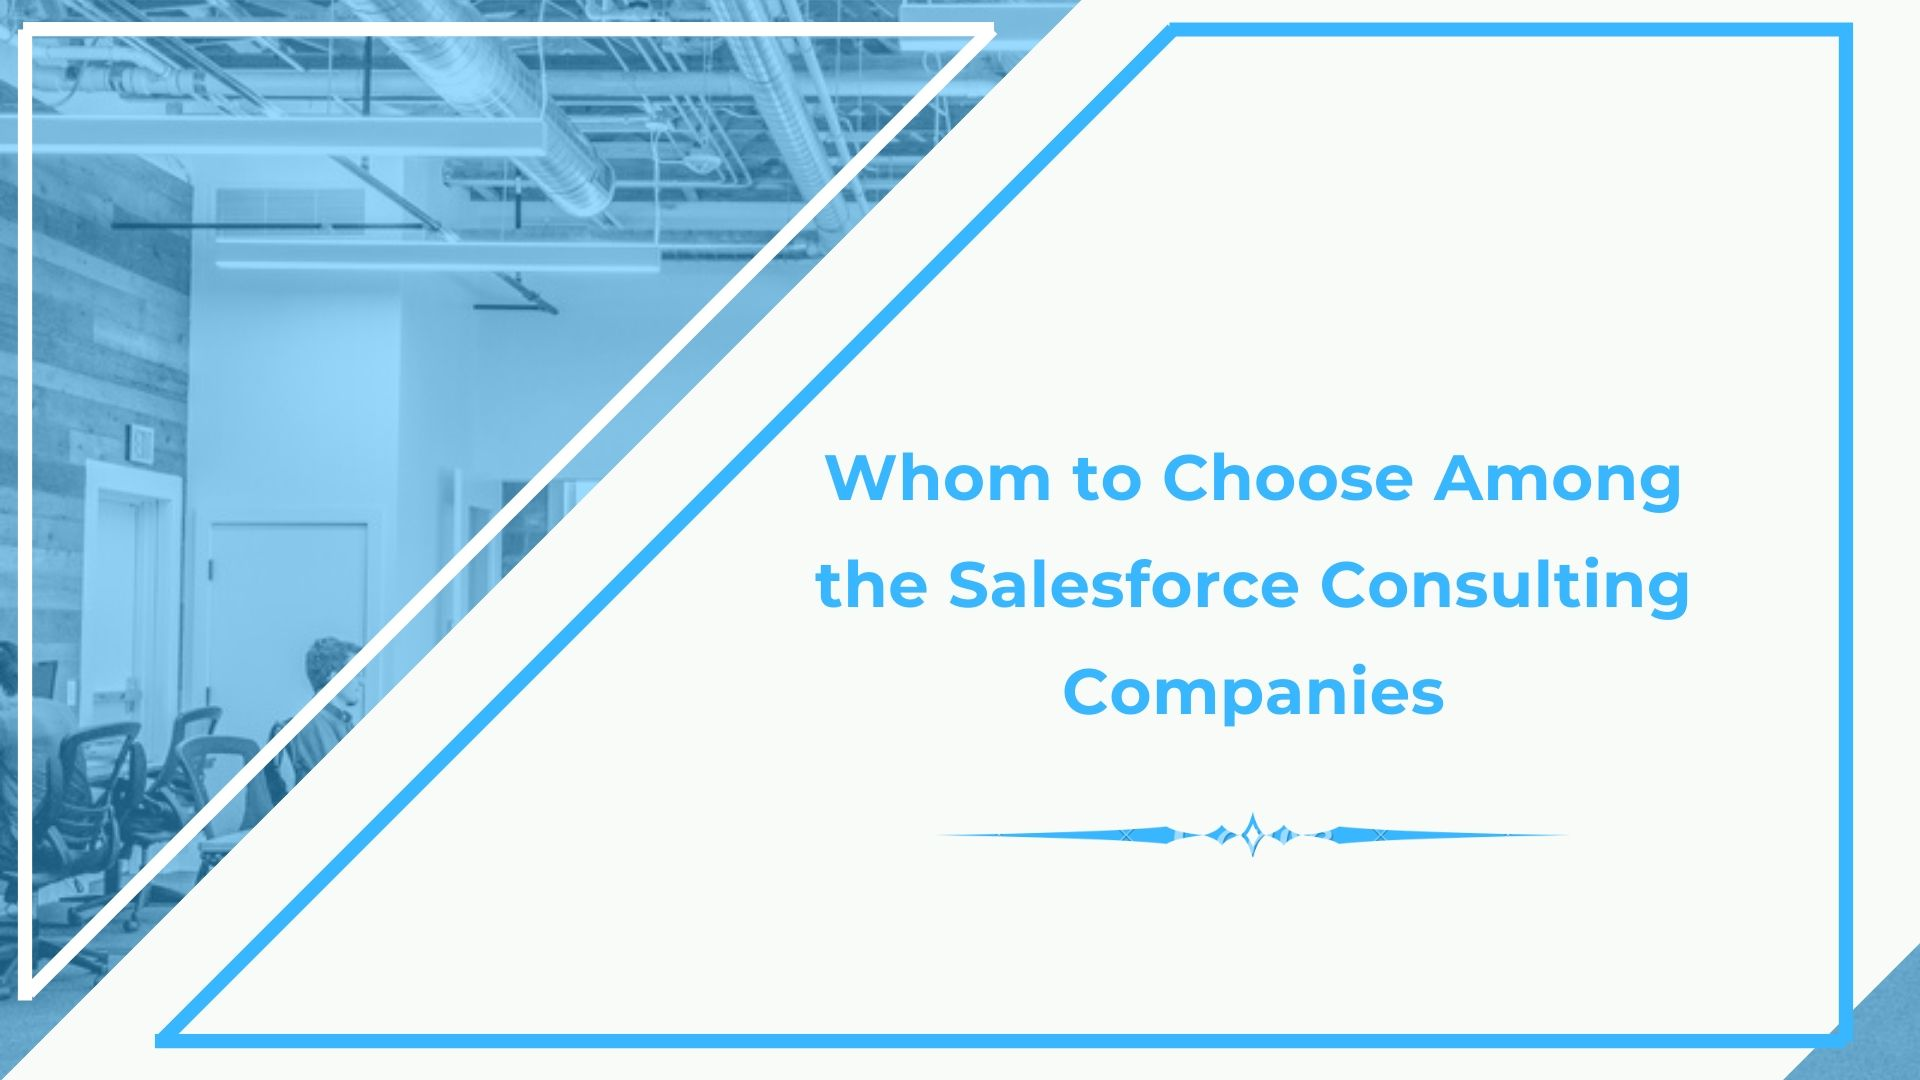 Whom to Choose Among the Salesforce Consulting Companies